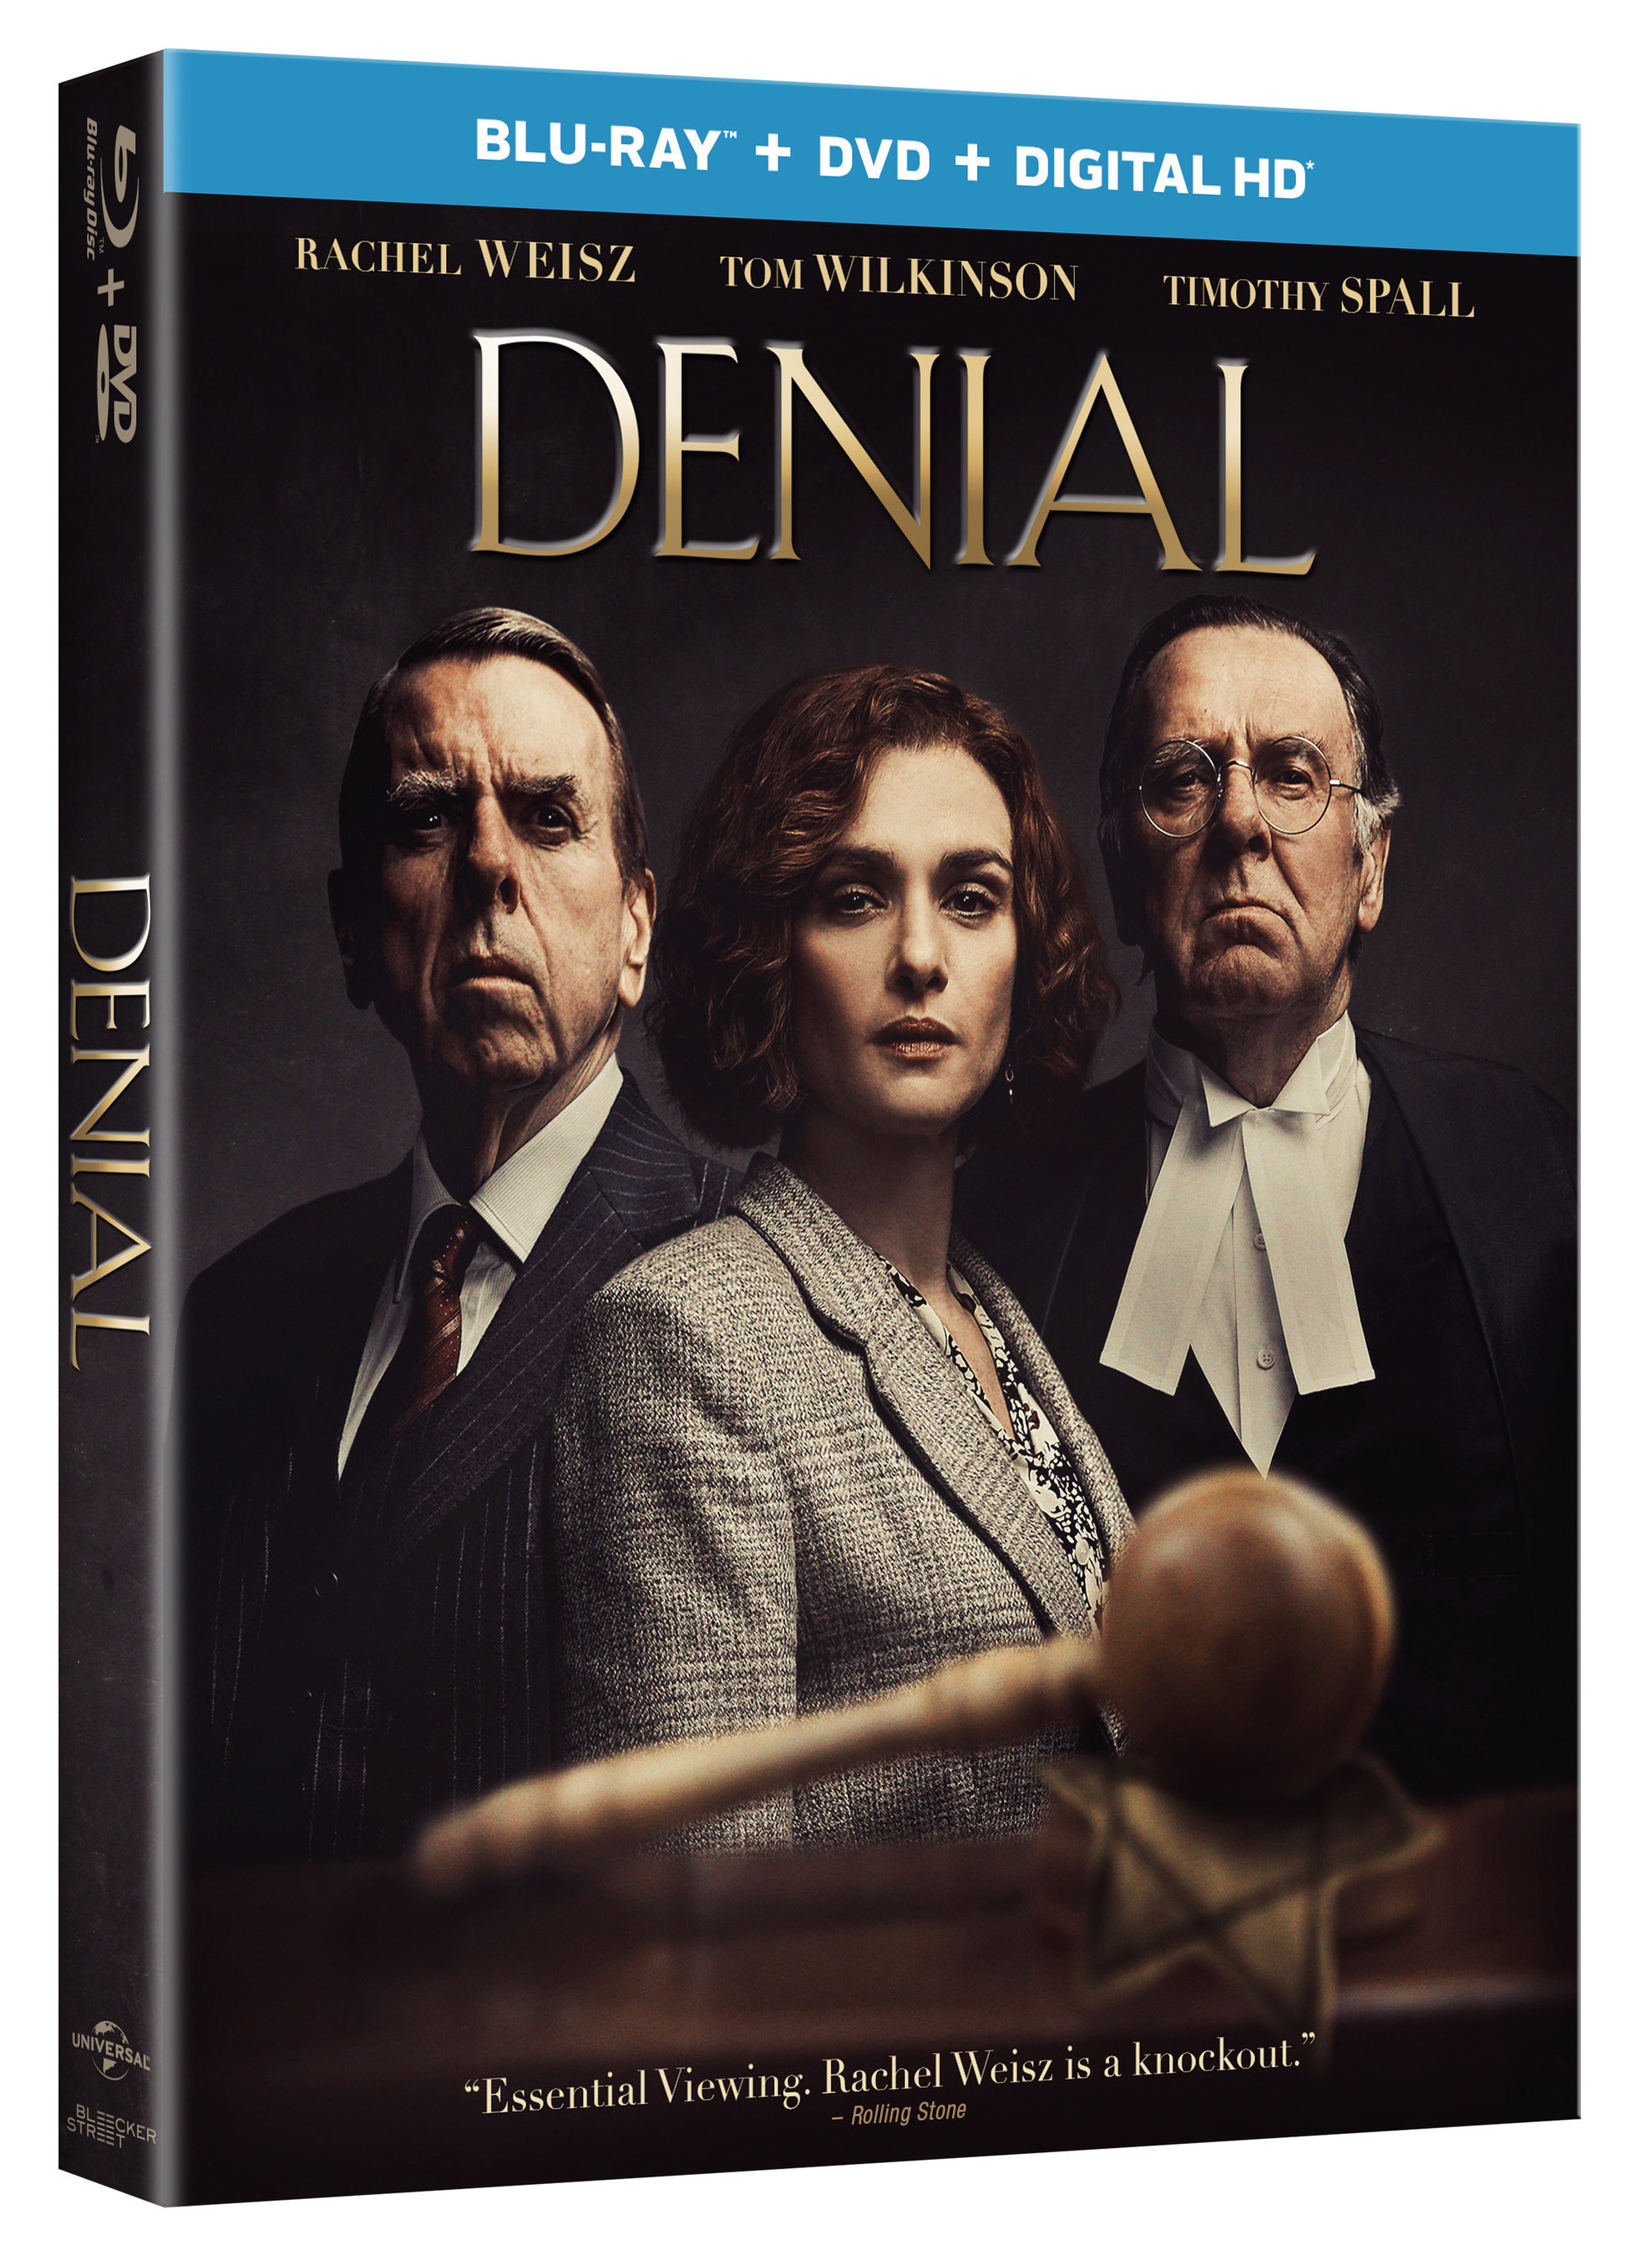 Academy Award' Winner Rachel Weisz, Tom Wilkinson And Timothy Spall Star In The Inspirational True Story Of A Battle For Justice: Denial